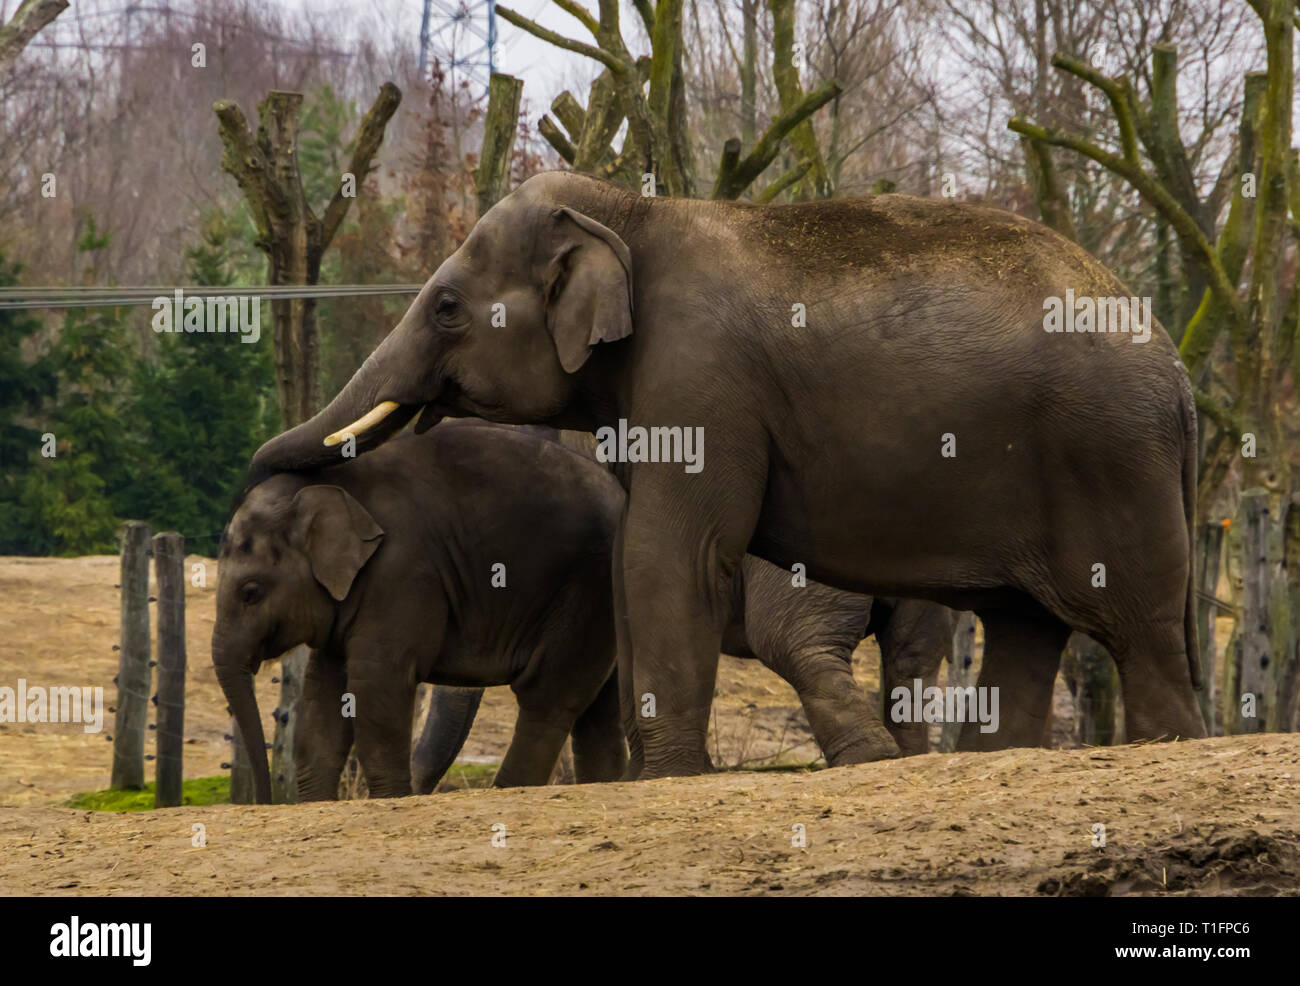 male Asian elephant putting its trunk over its young elephant, animal family portrait of a father and kid, Endangered animals from Asia - Stock Image